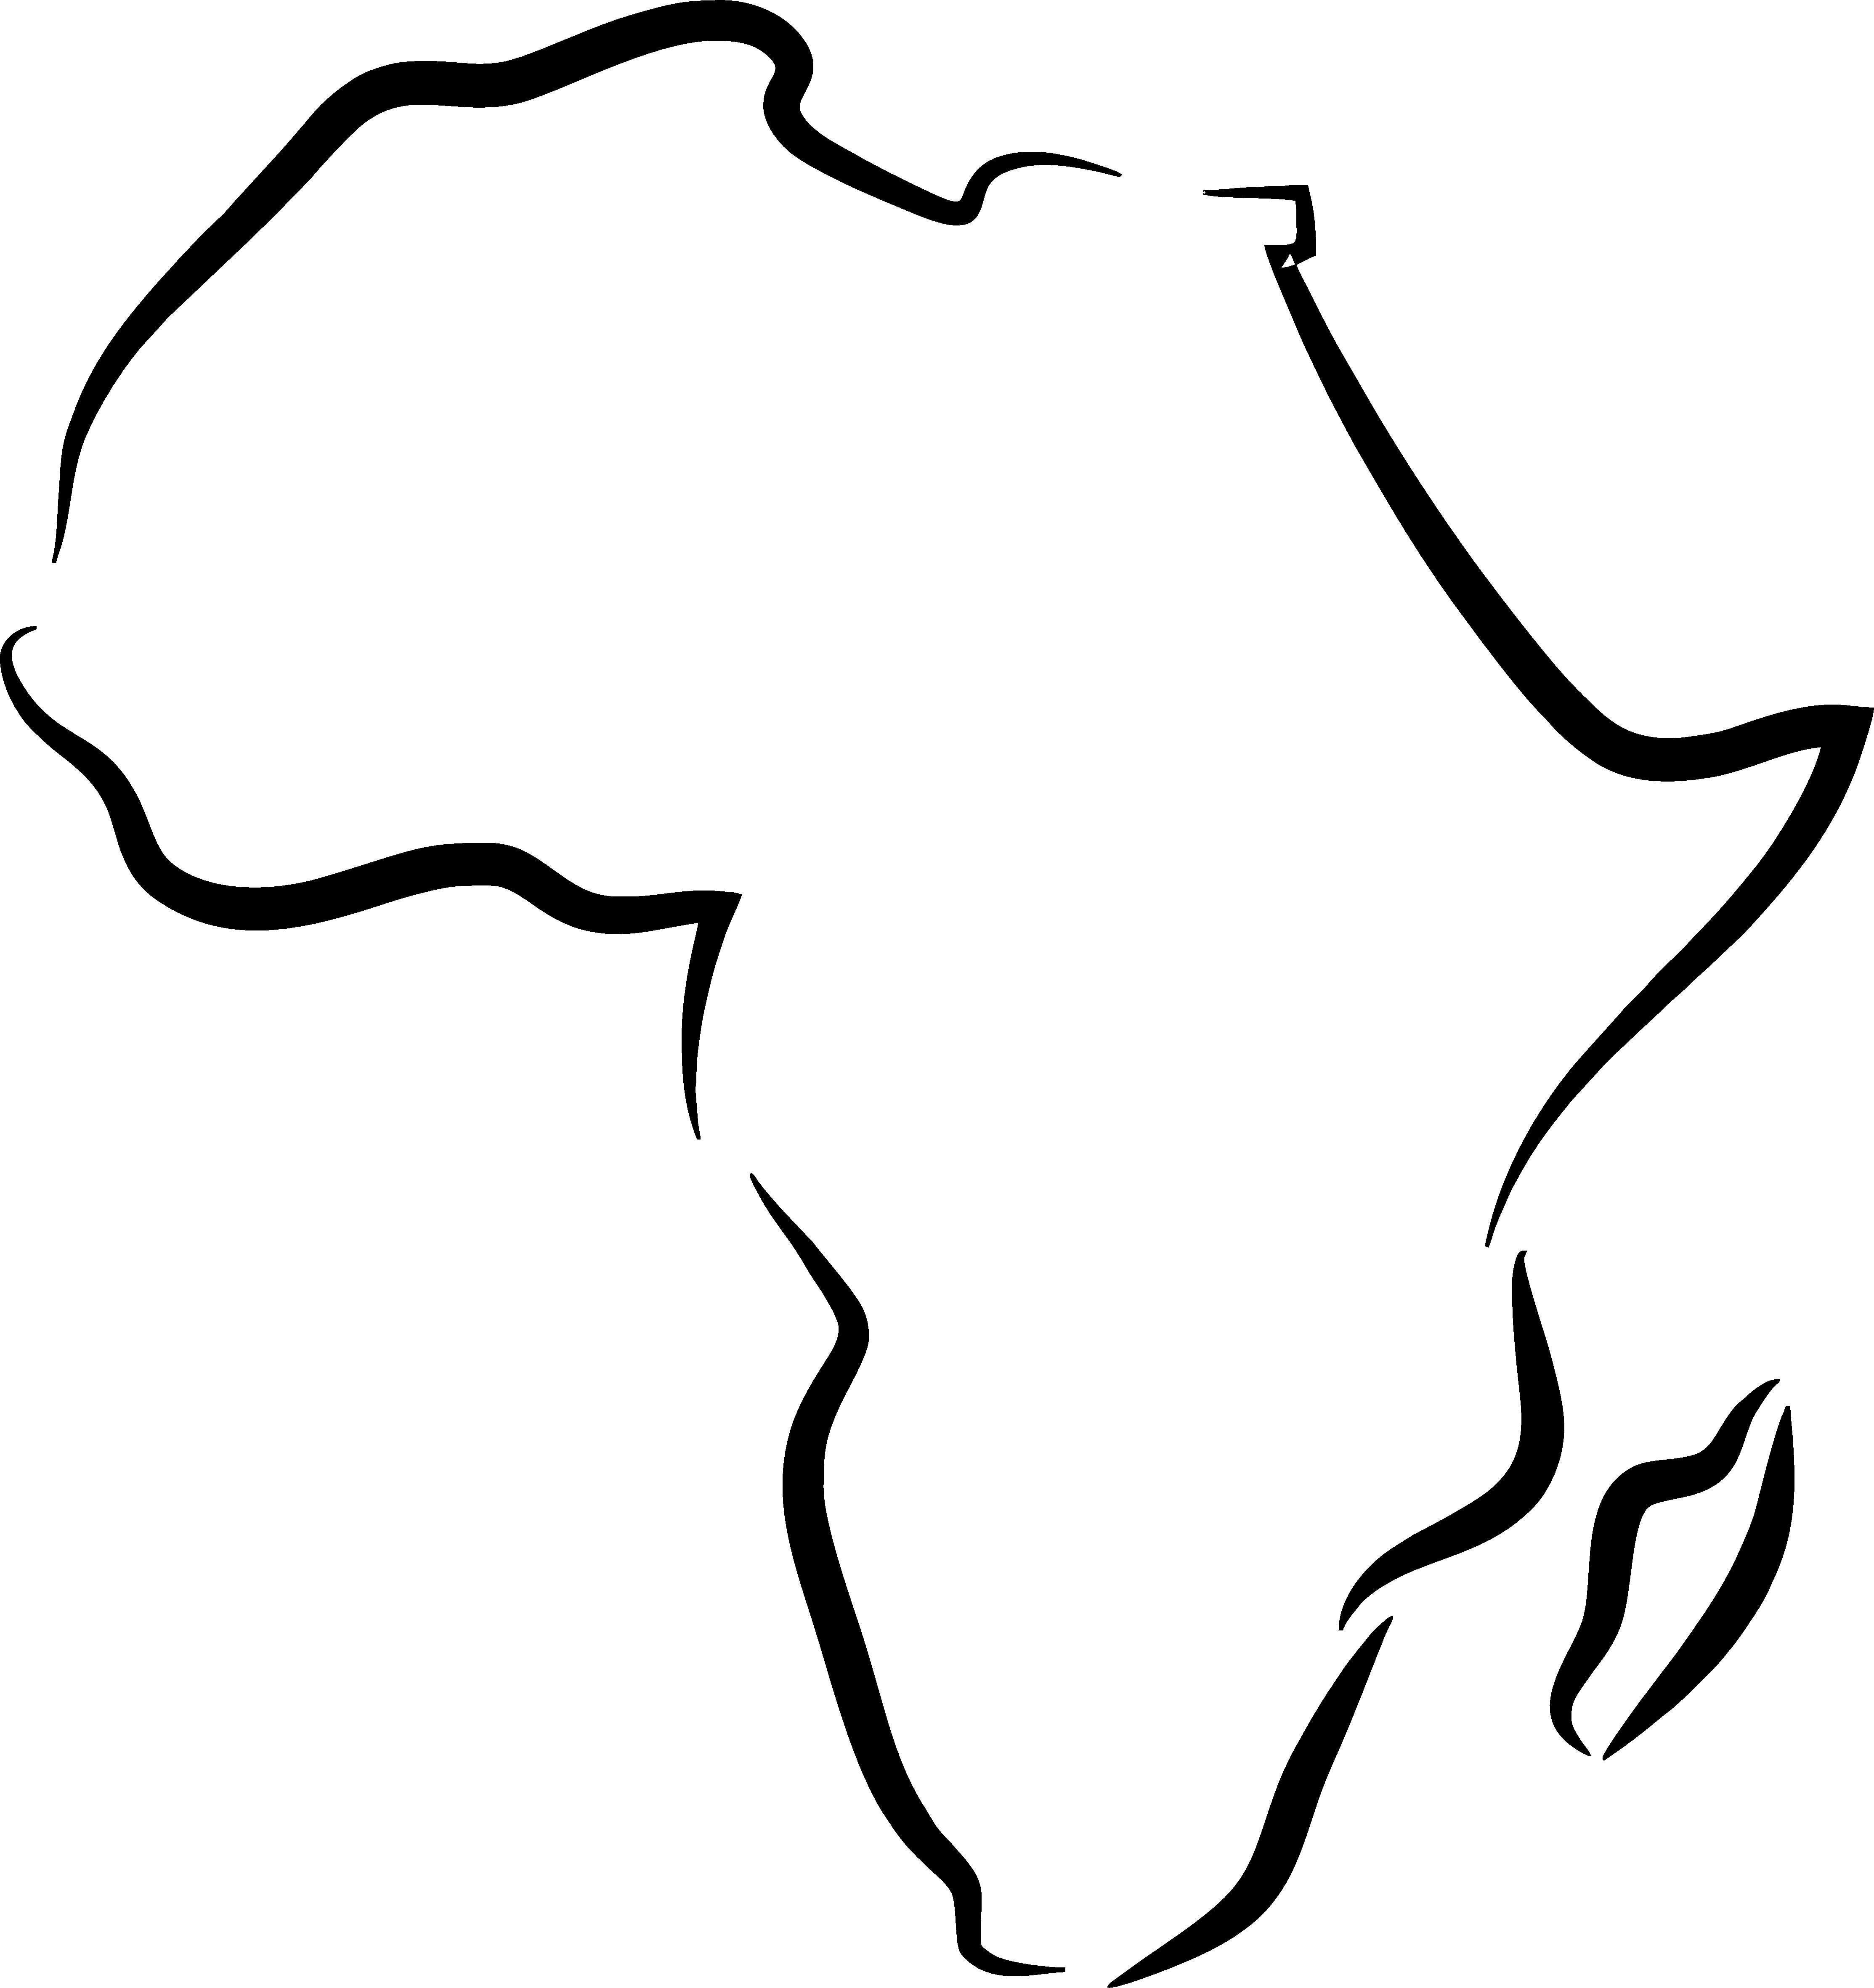 Mcc global education. Africa png image svg free